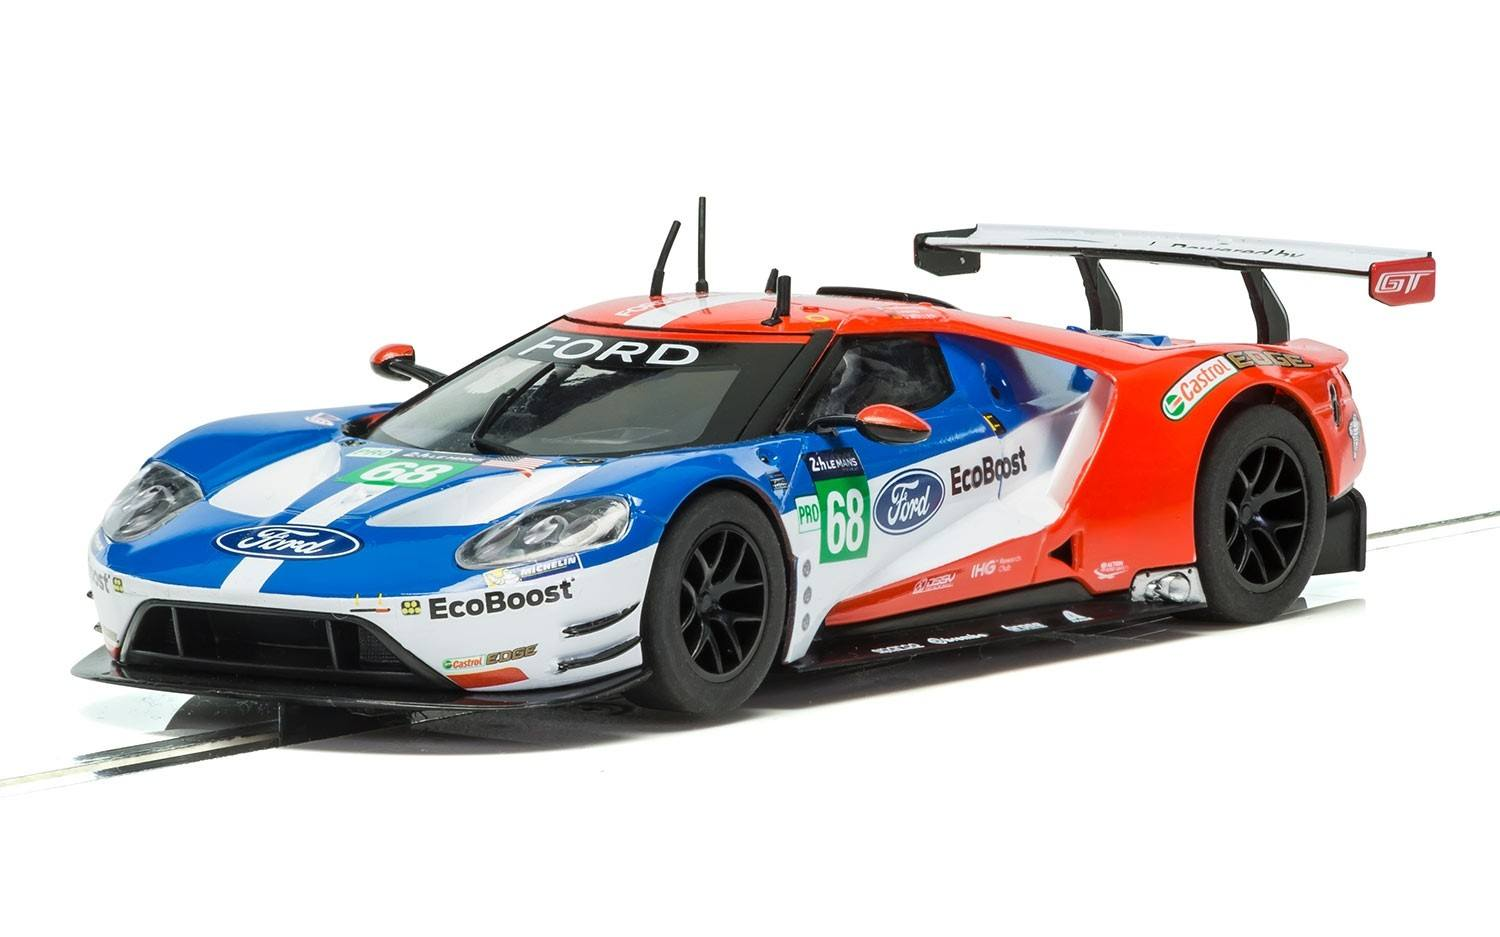 Ford GT - GTE Le Mans 2016 #66 1/32 Slot Car